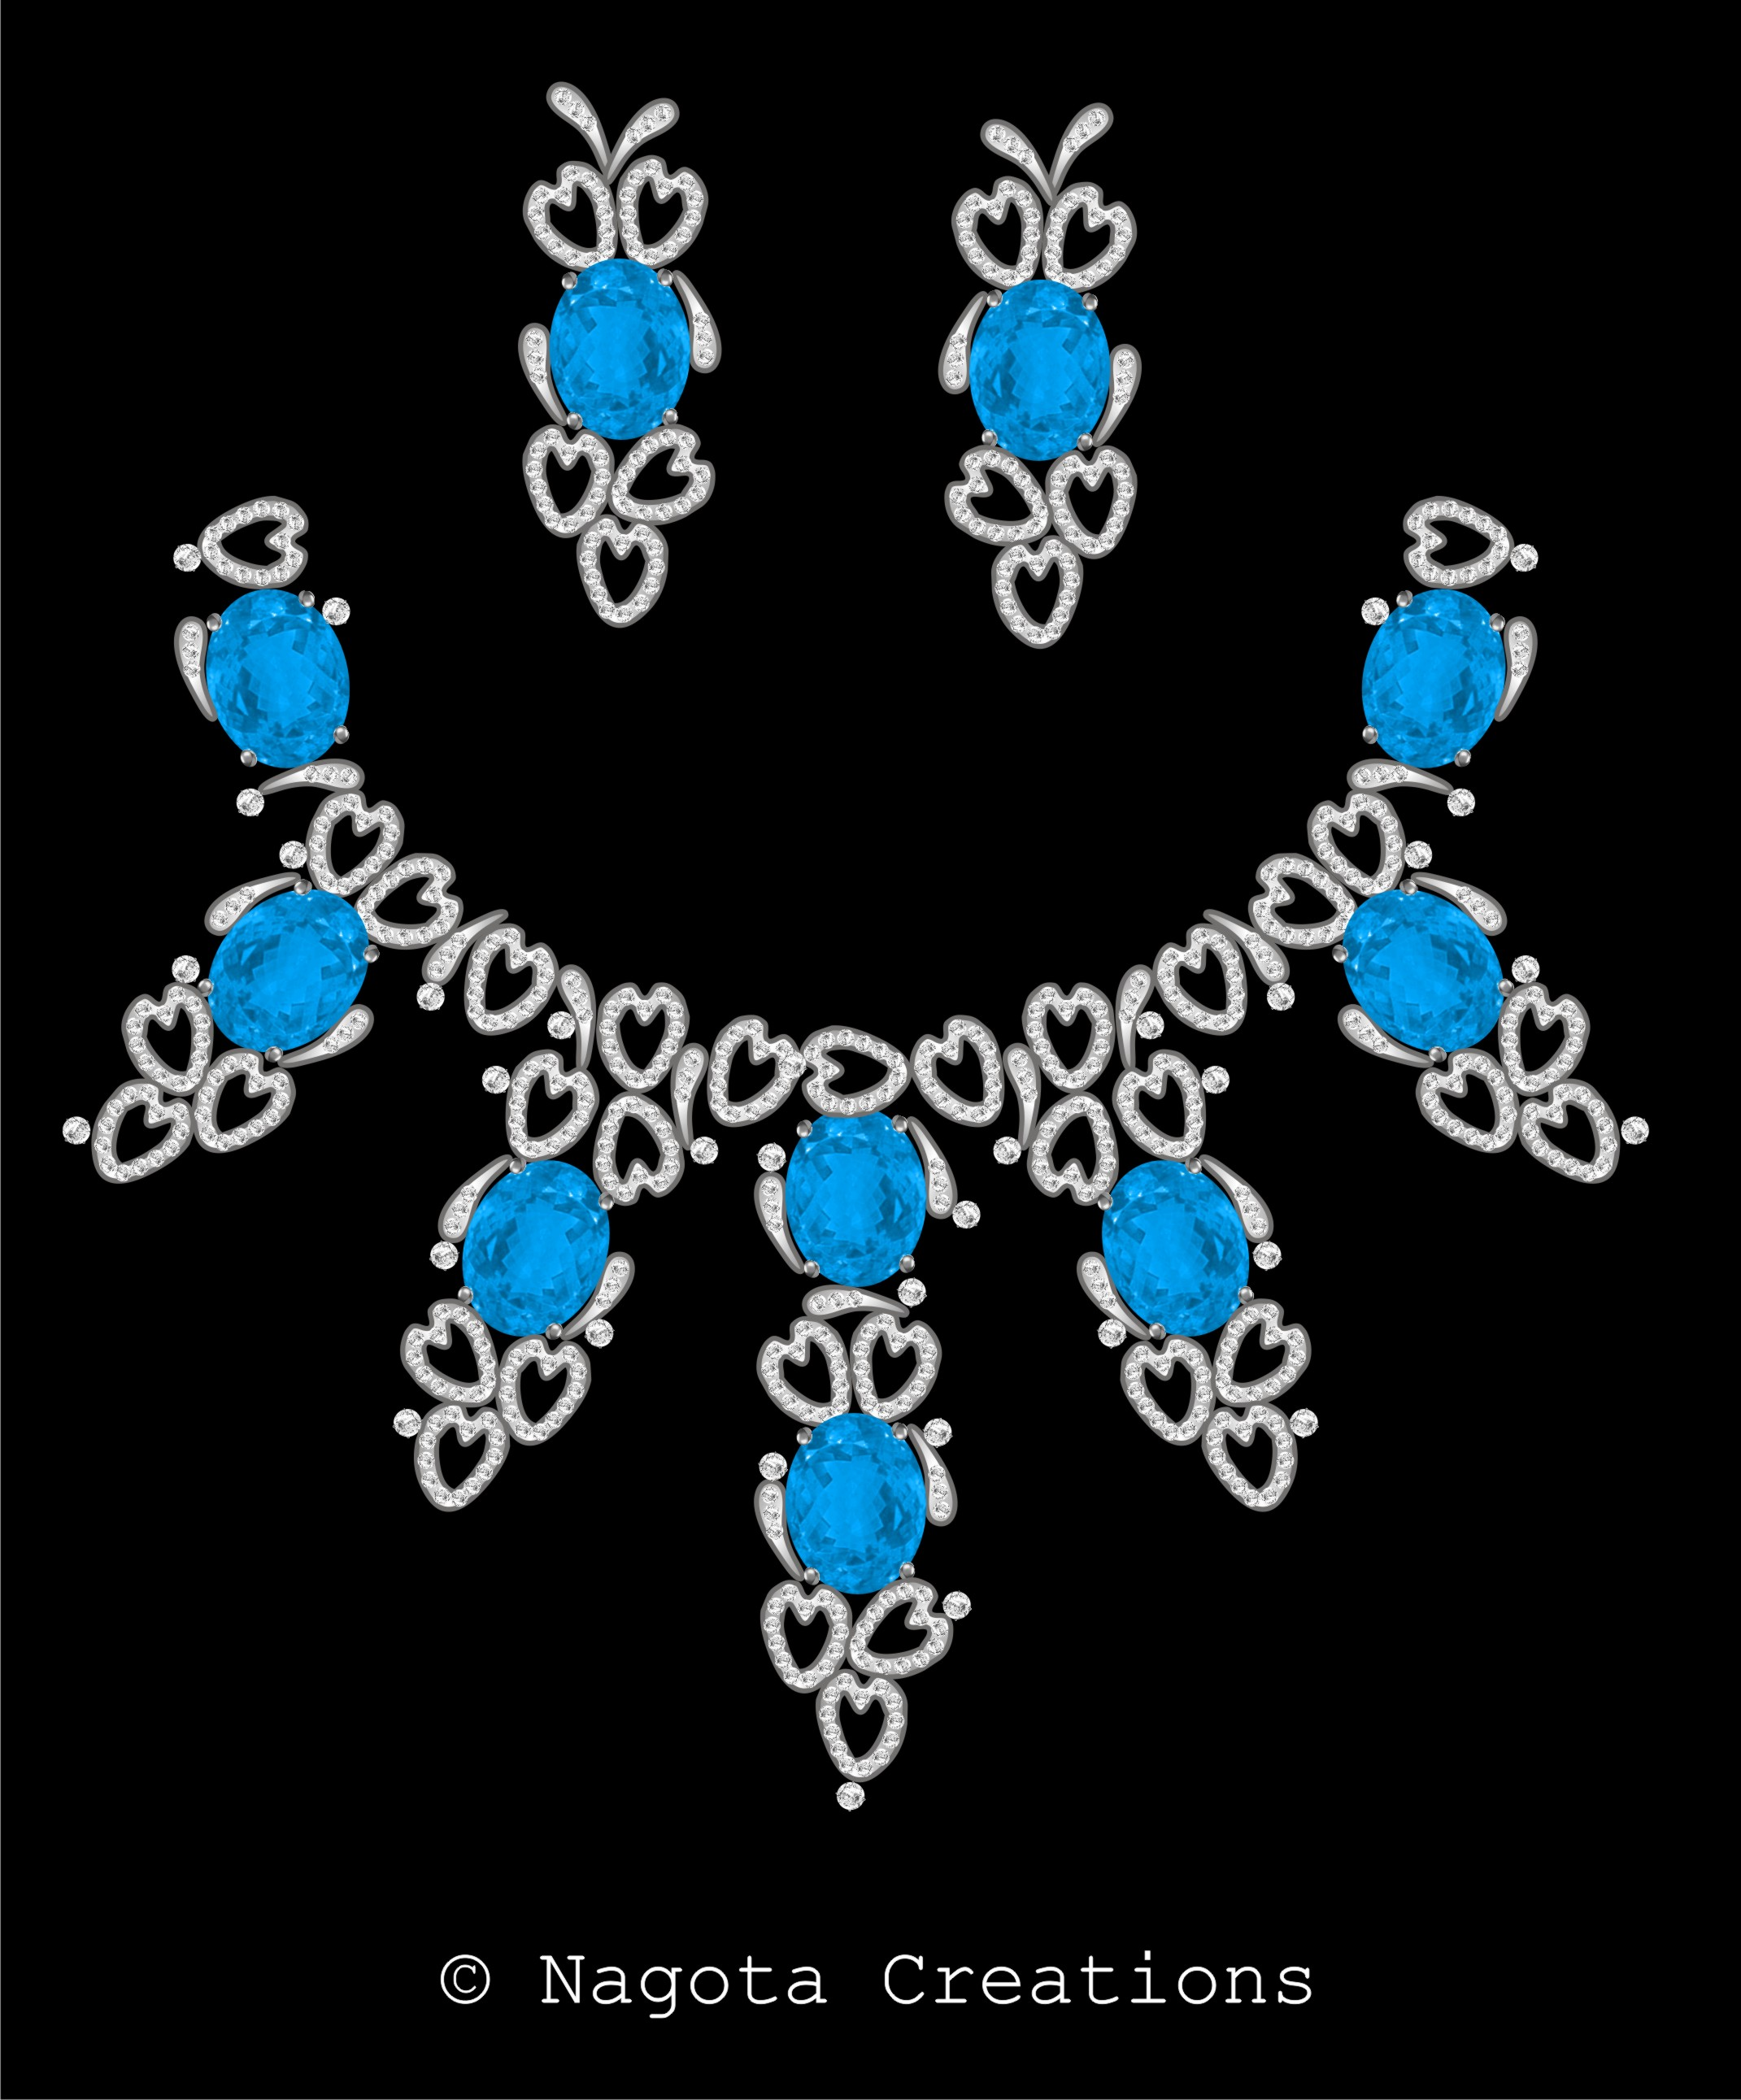 Bridal Necklace Set in white gold with Diamonds and Blue Topaz